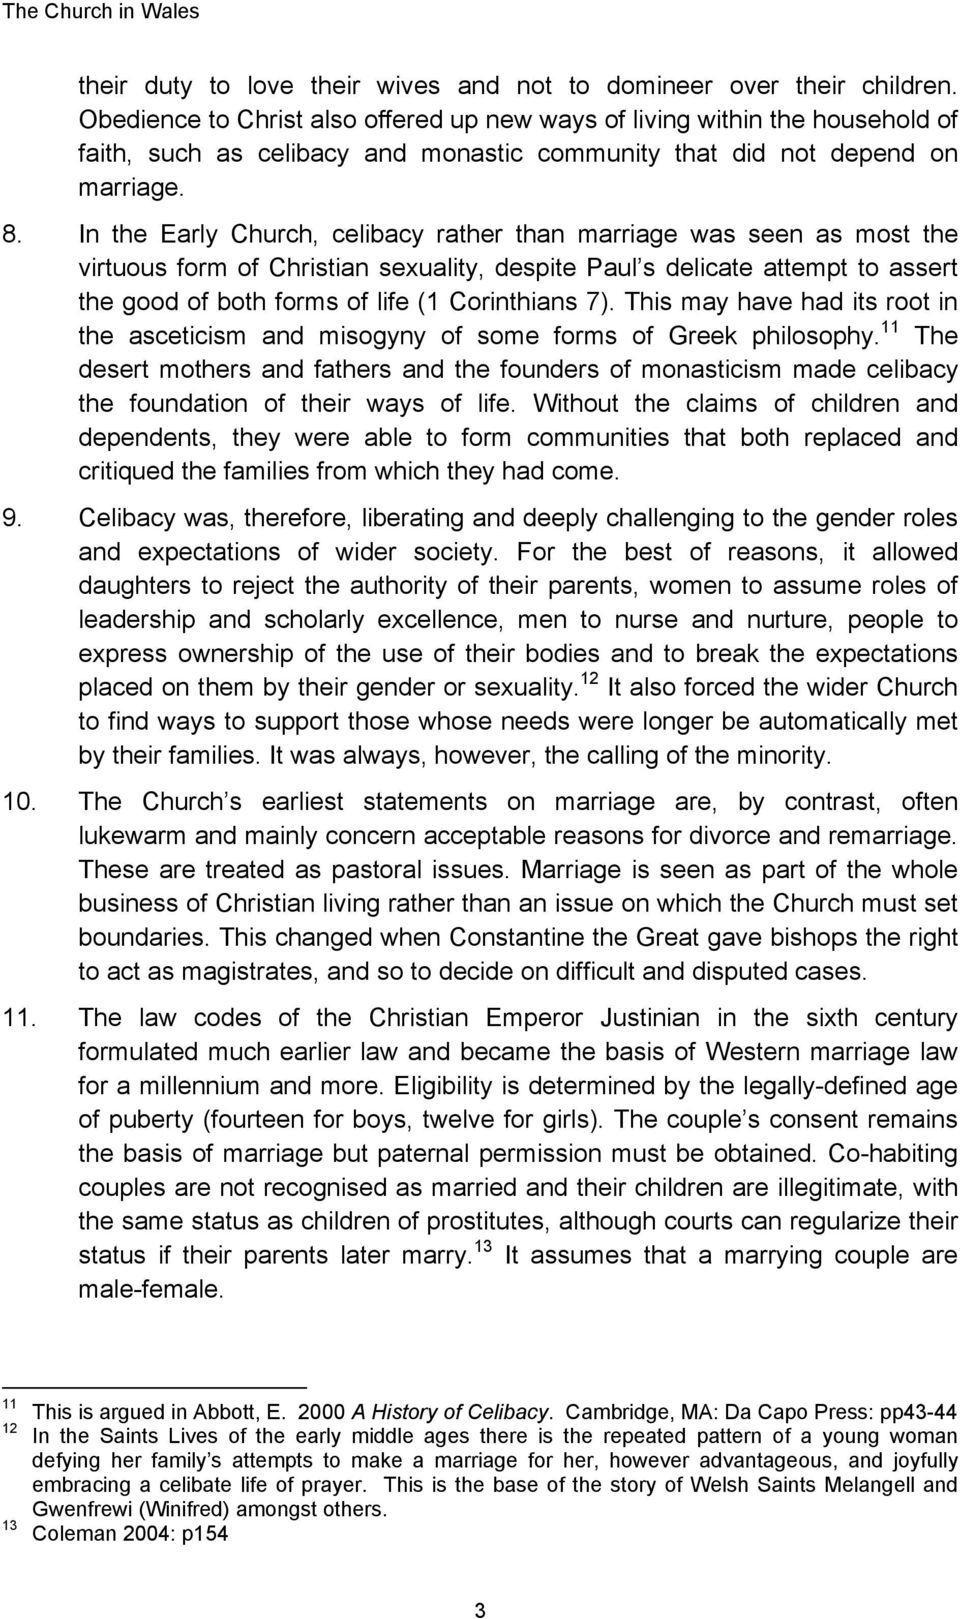 In the Early Church, celibacy rather than marriage was seen as most the virtuous form of Christian sexuality, despite Paul s delicate attempt to assert the good of both forms of life (1 Corinthians